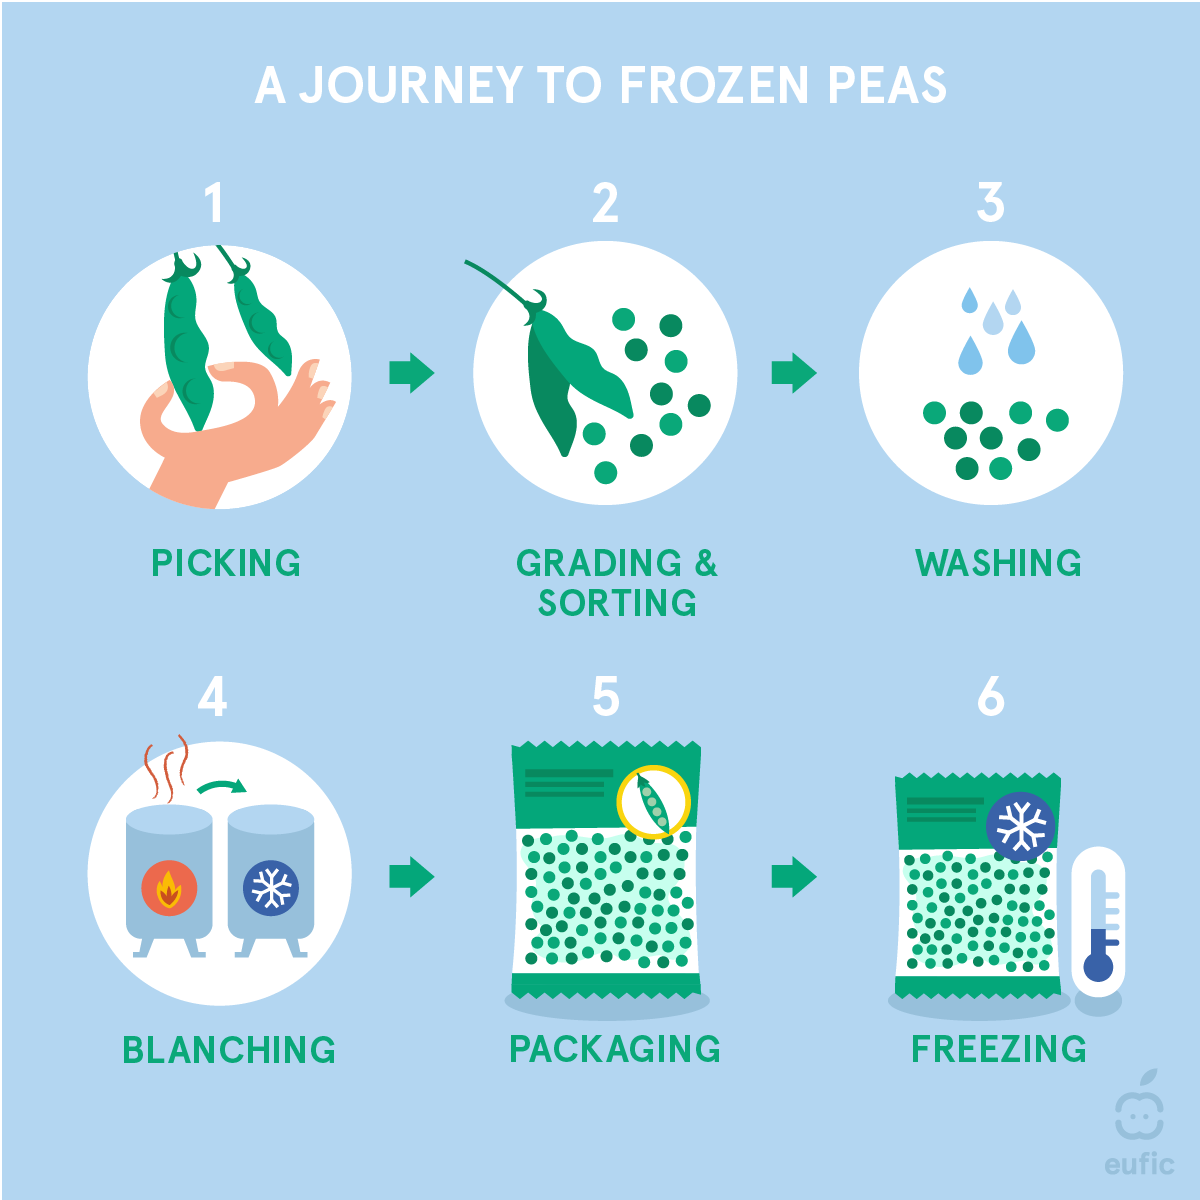 the process for packaging frozen peas consisting of 6 illustrated steps: picking (hand picking pea pod), grading and sorting (pod opening to release peas), washing (peas with water droplets), blanching (two industrial heating chambers, one with a fire on and an arrow indicating transfer to another with a snowflake on), packaging (bag of peas), freezing (bag of peas with snowflake symbol and a blue thermometer